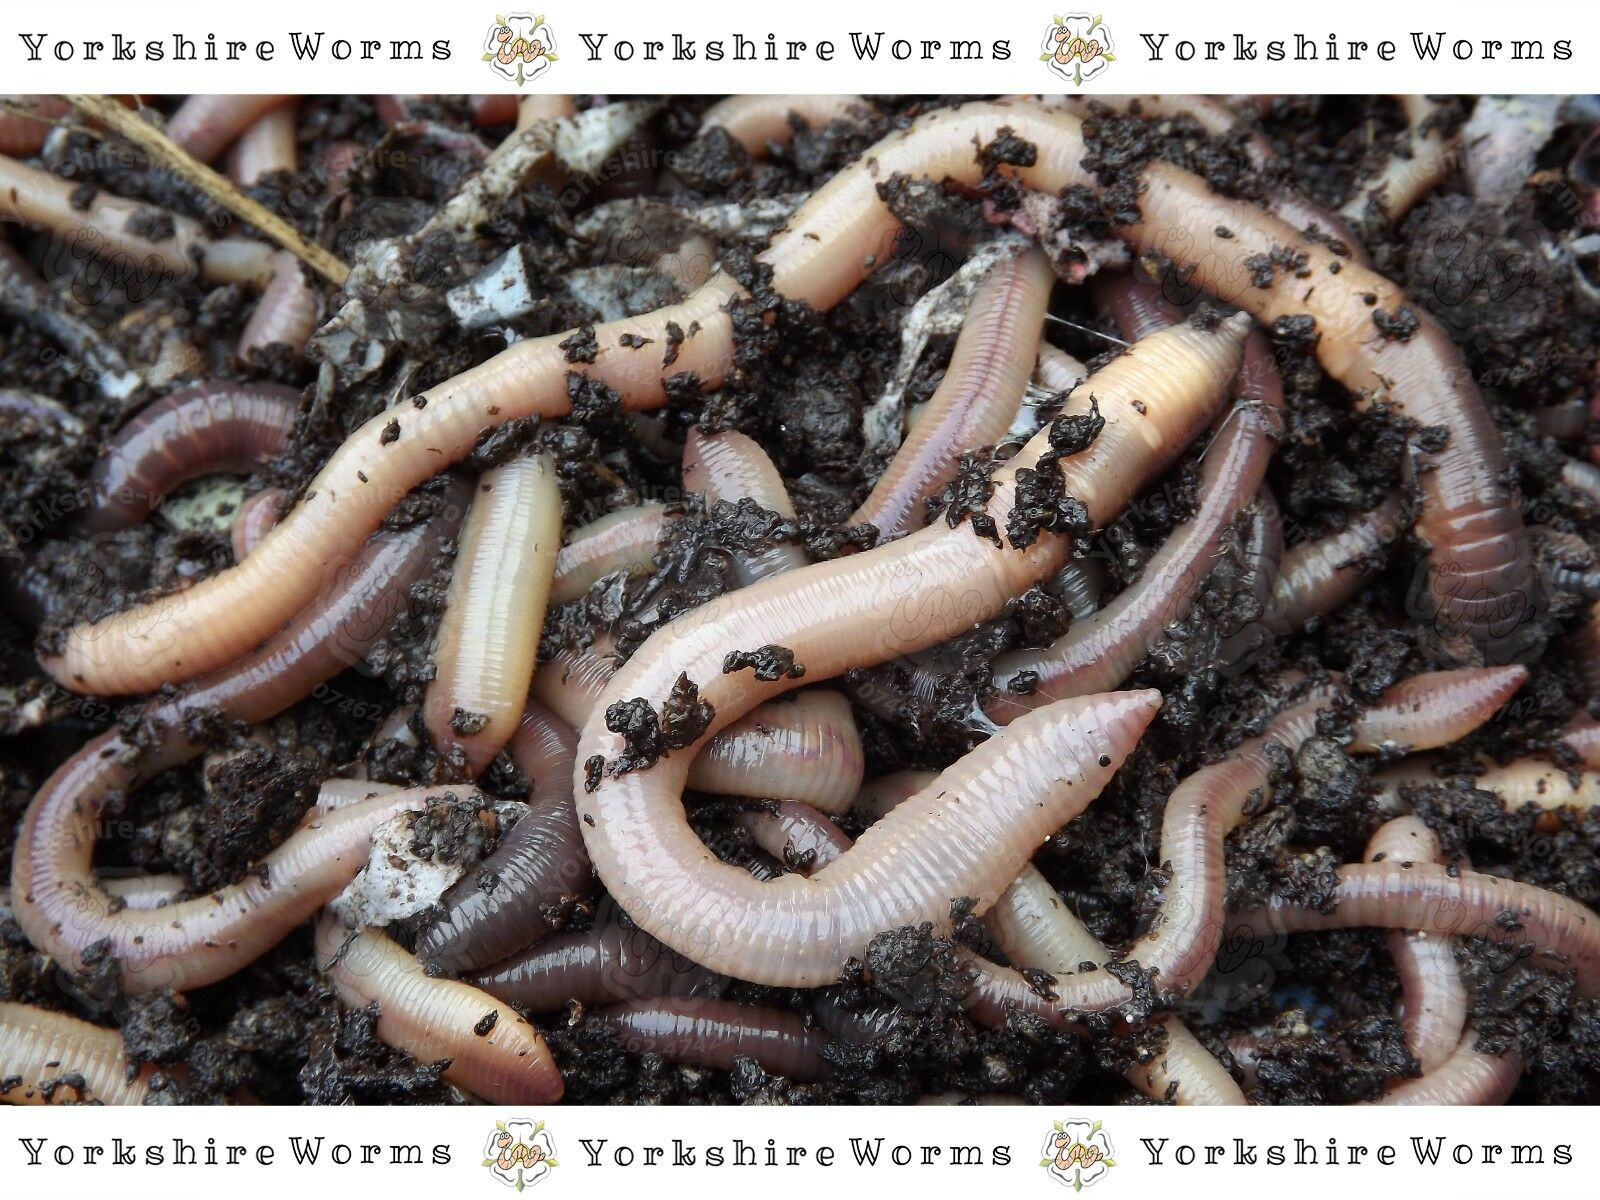 Lob Worms Earthworms Large Fishing Bait & Reptile Live Food Gardens (10 to 300)